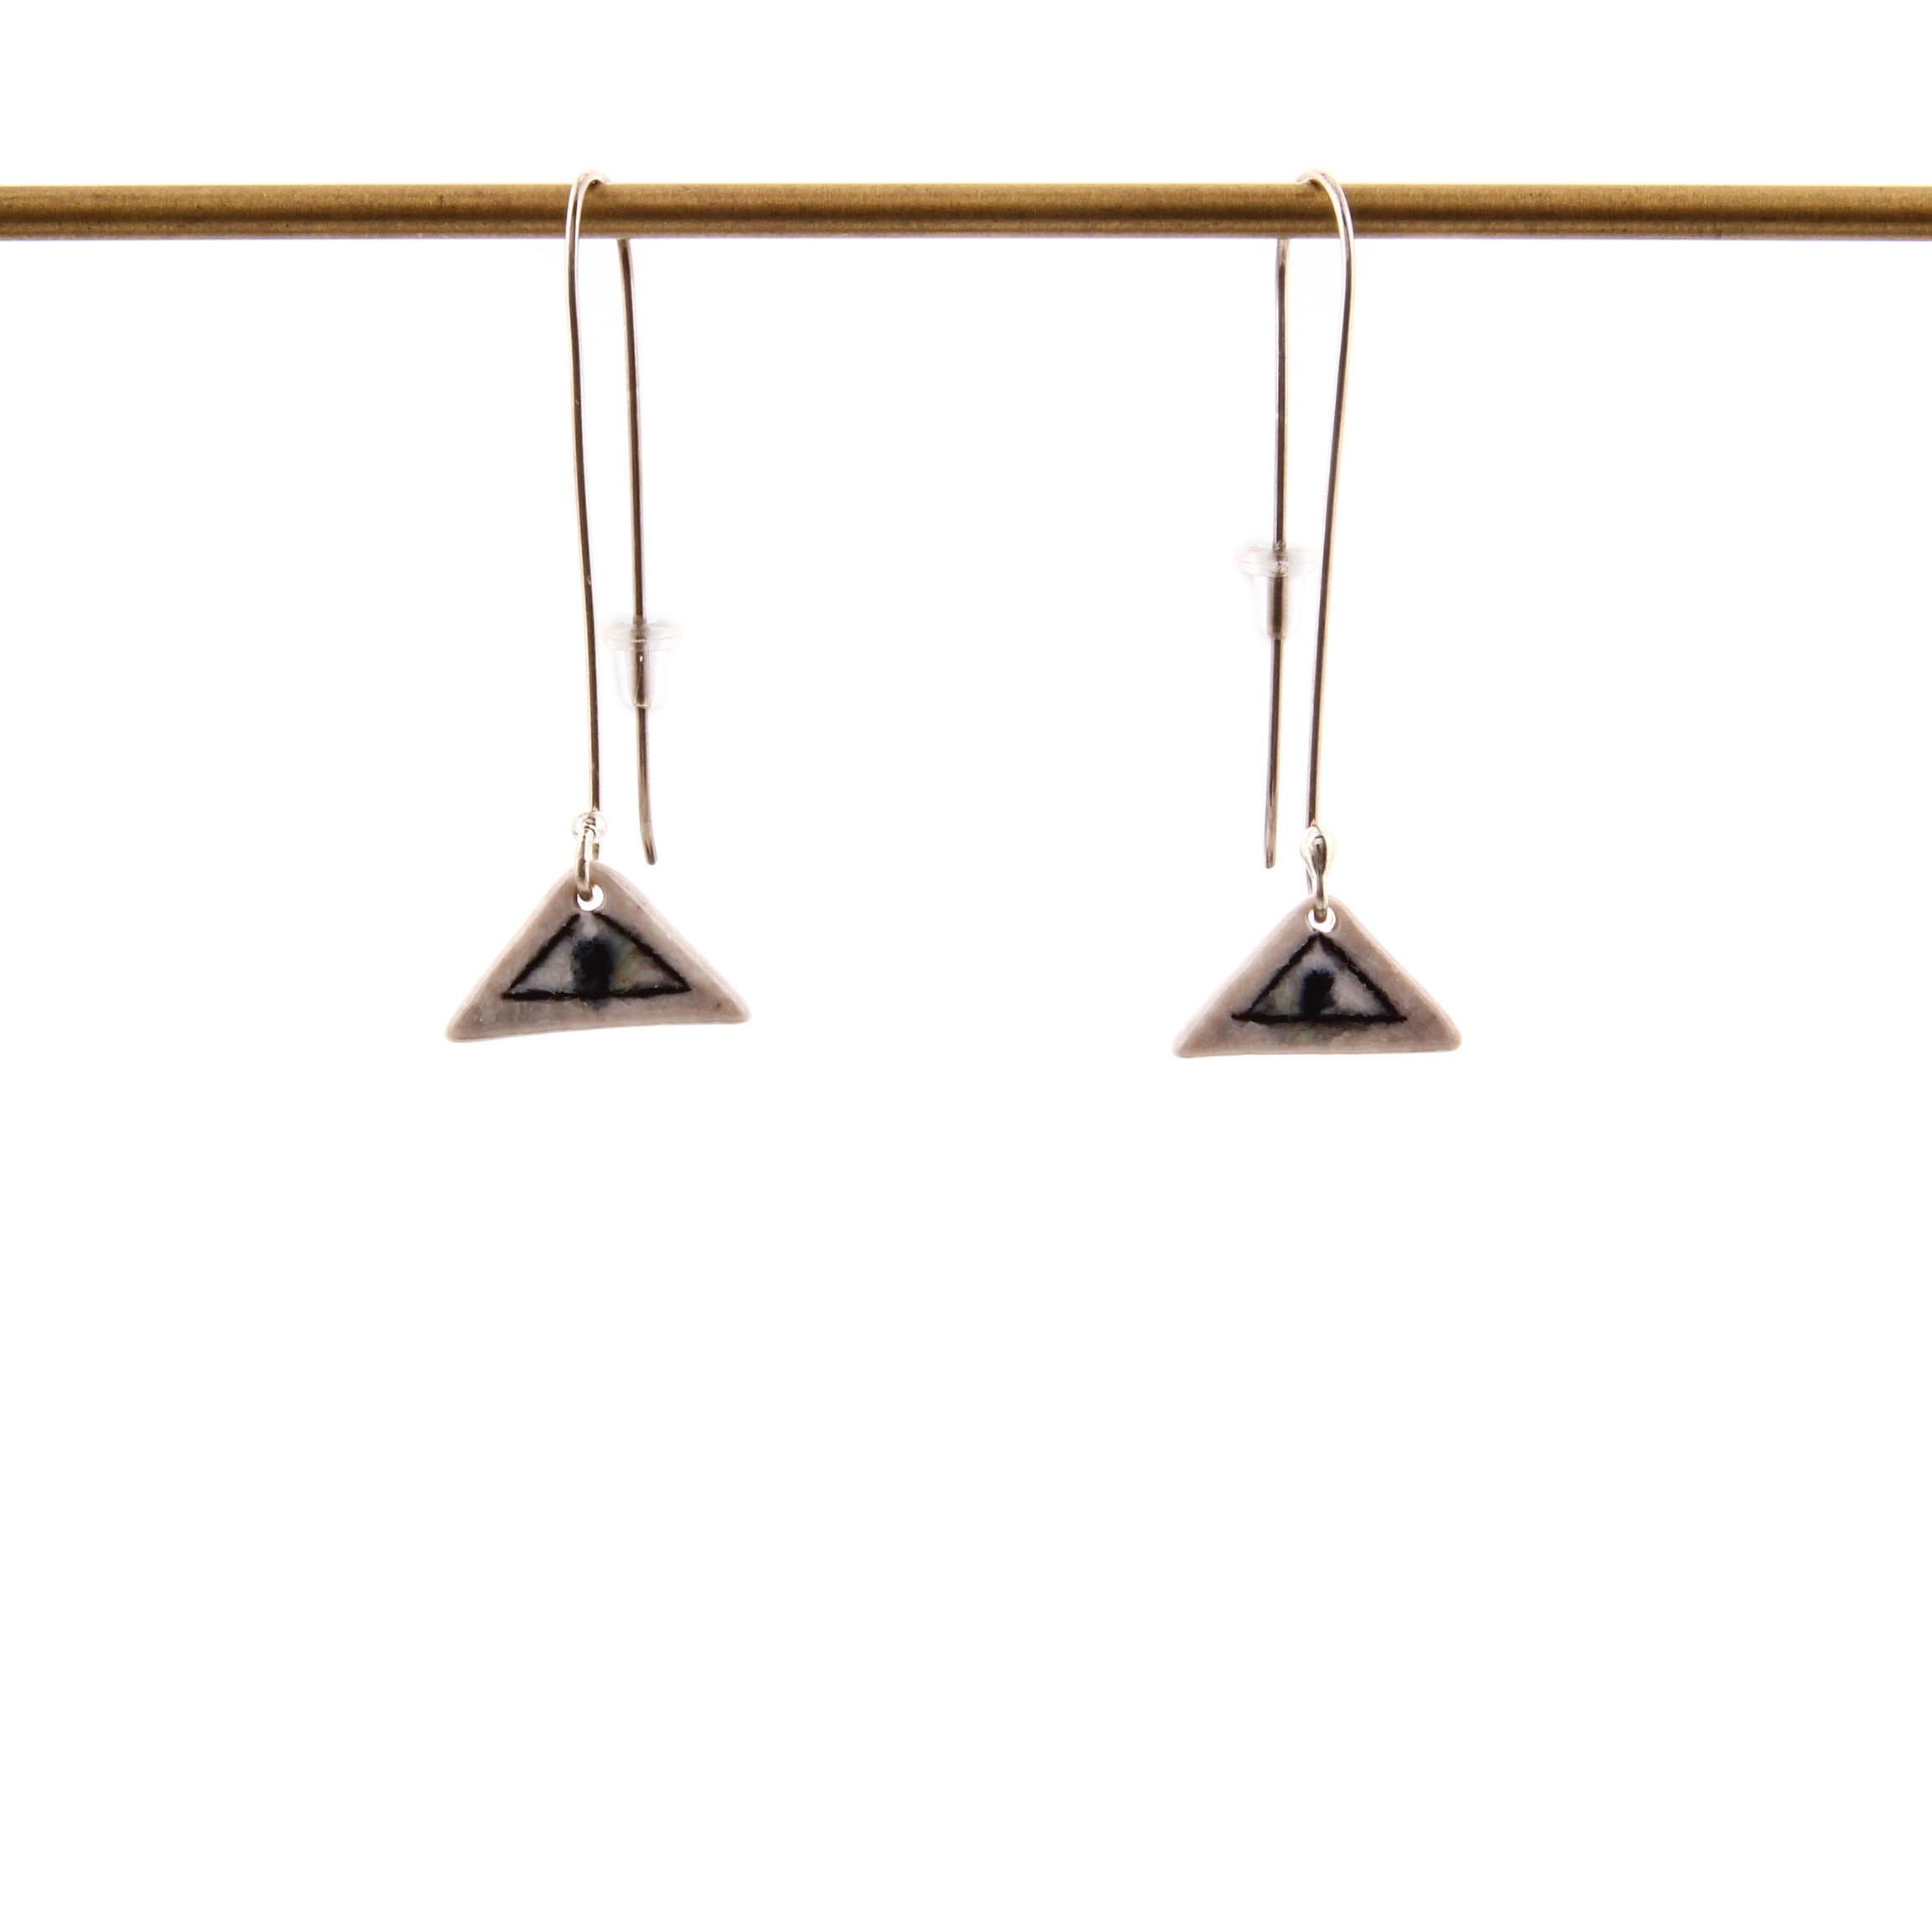 Lorna Meaden, Porcelain Triangle Earrings with Dots